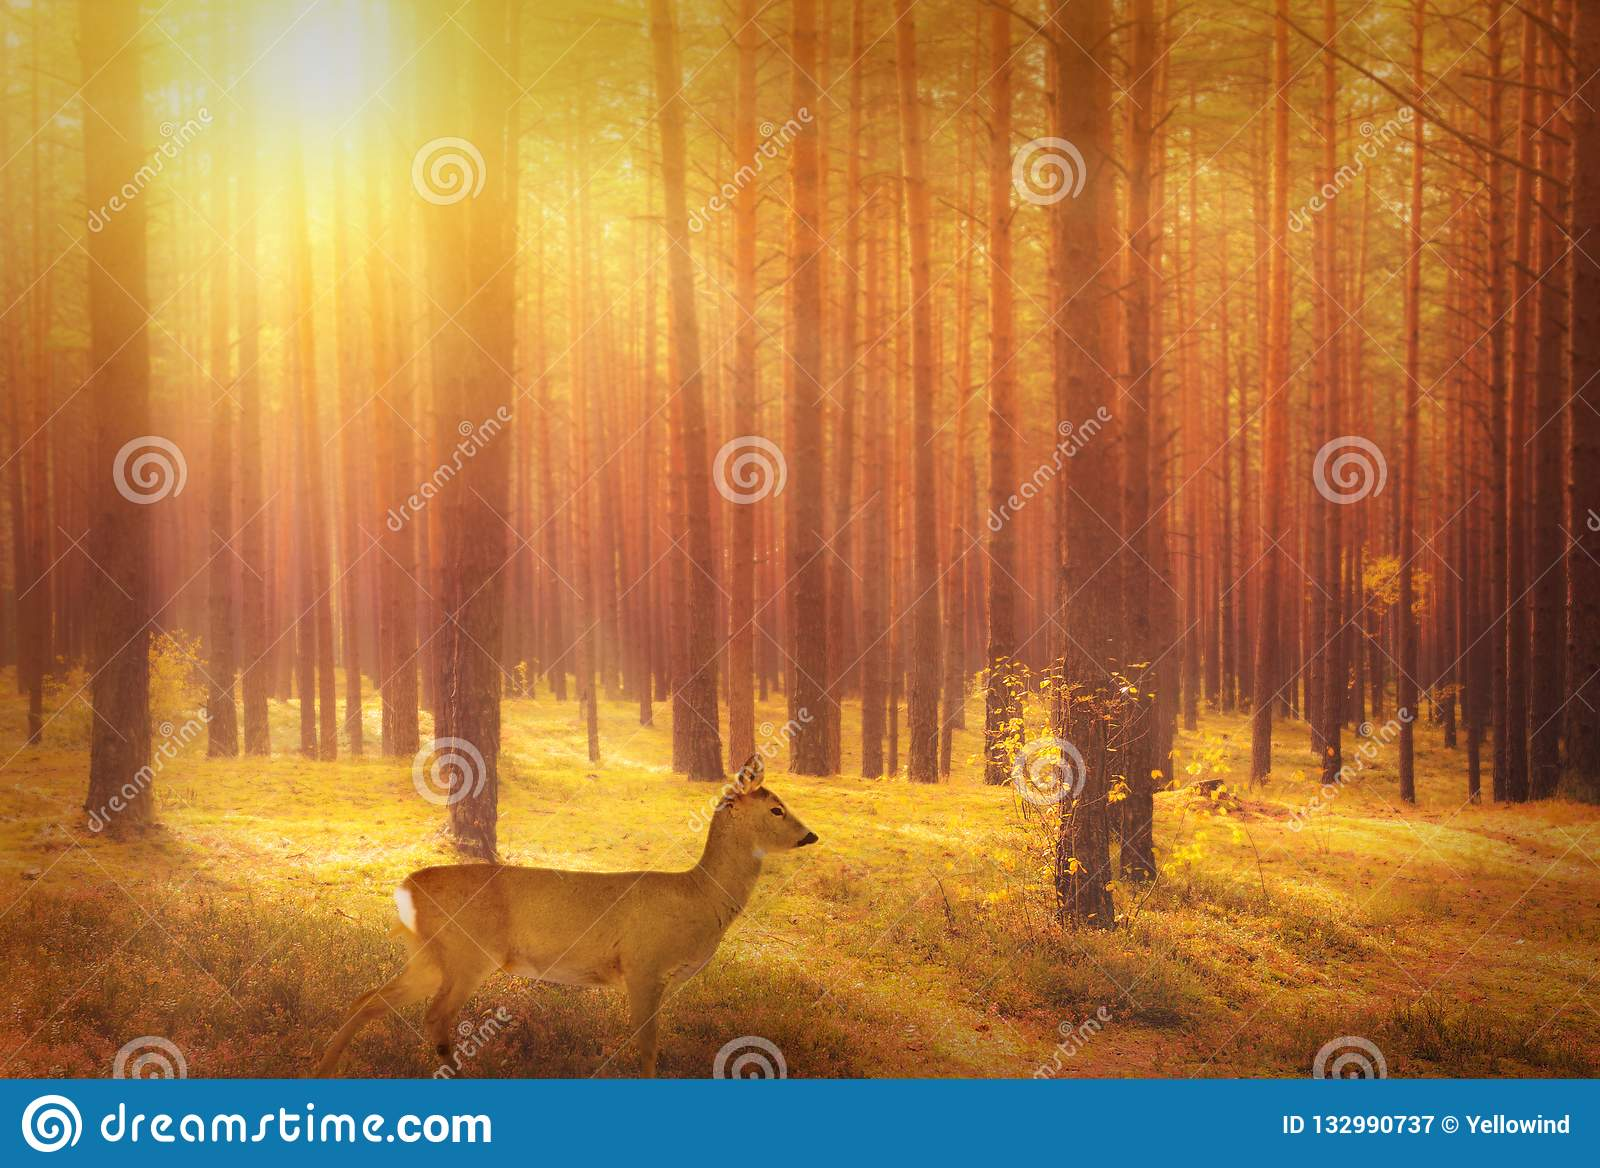 Roe deer in forest at sunrise